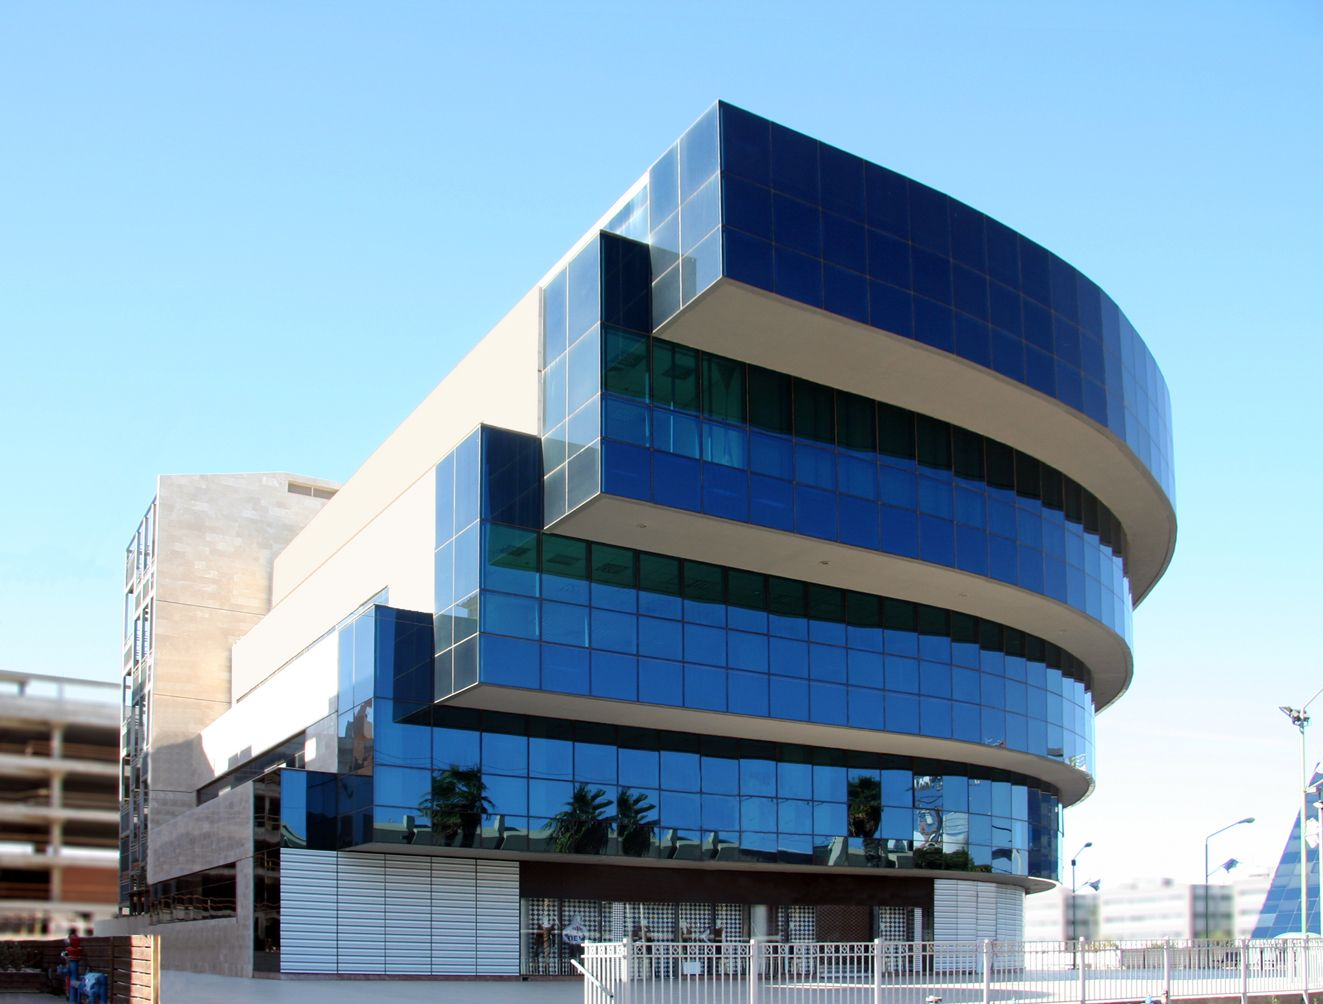 Best Architecture Buildings office building architecture. gallery of city gate westfourth